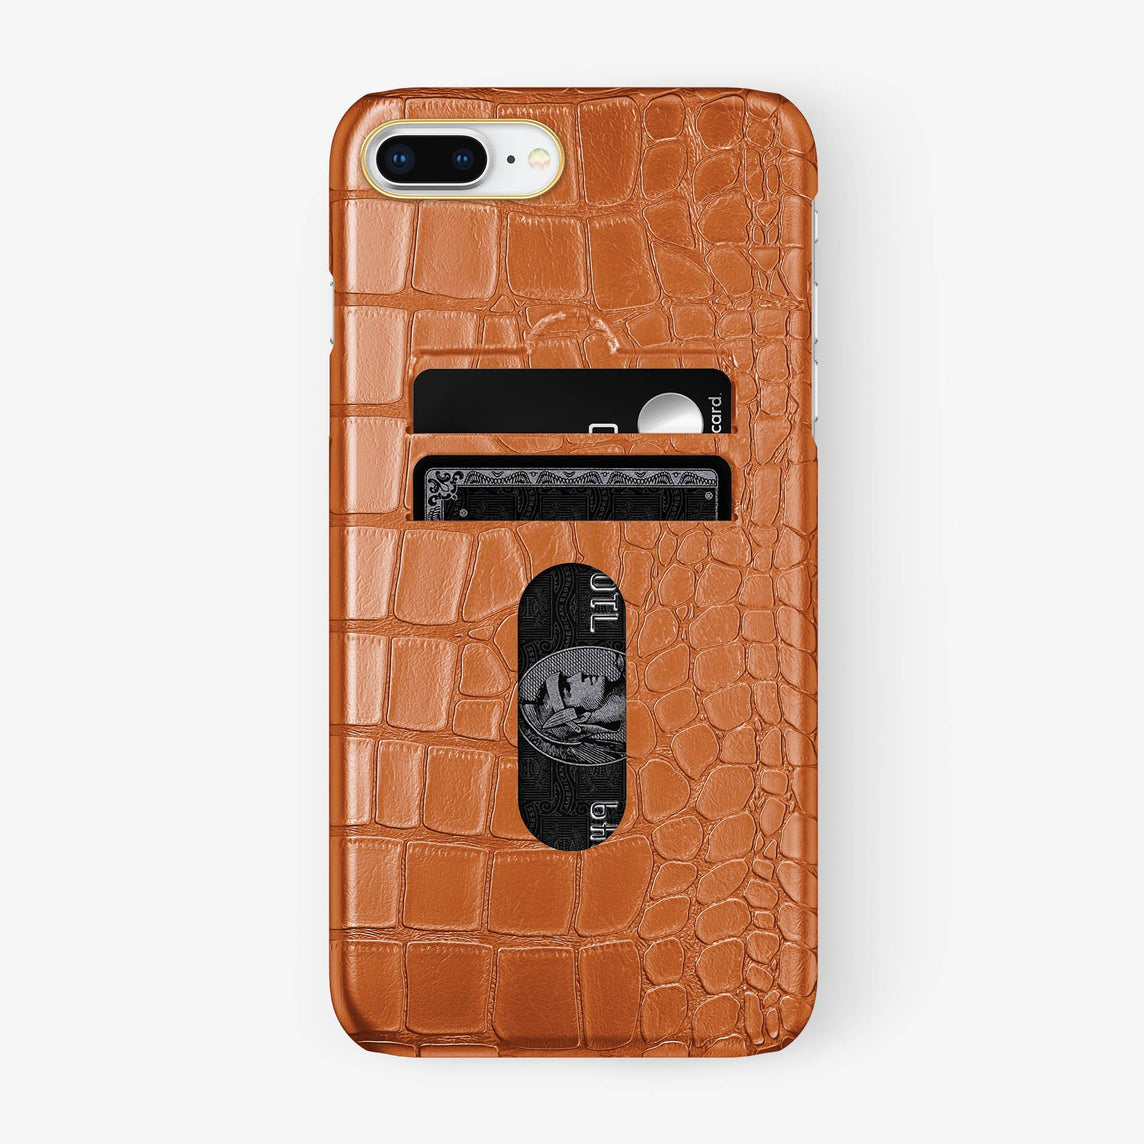 Alligator Card Holder Case iPhone 7/8 Plus | Orange - Yellow Gold